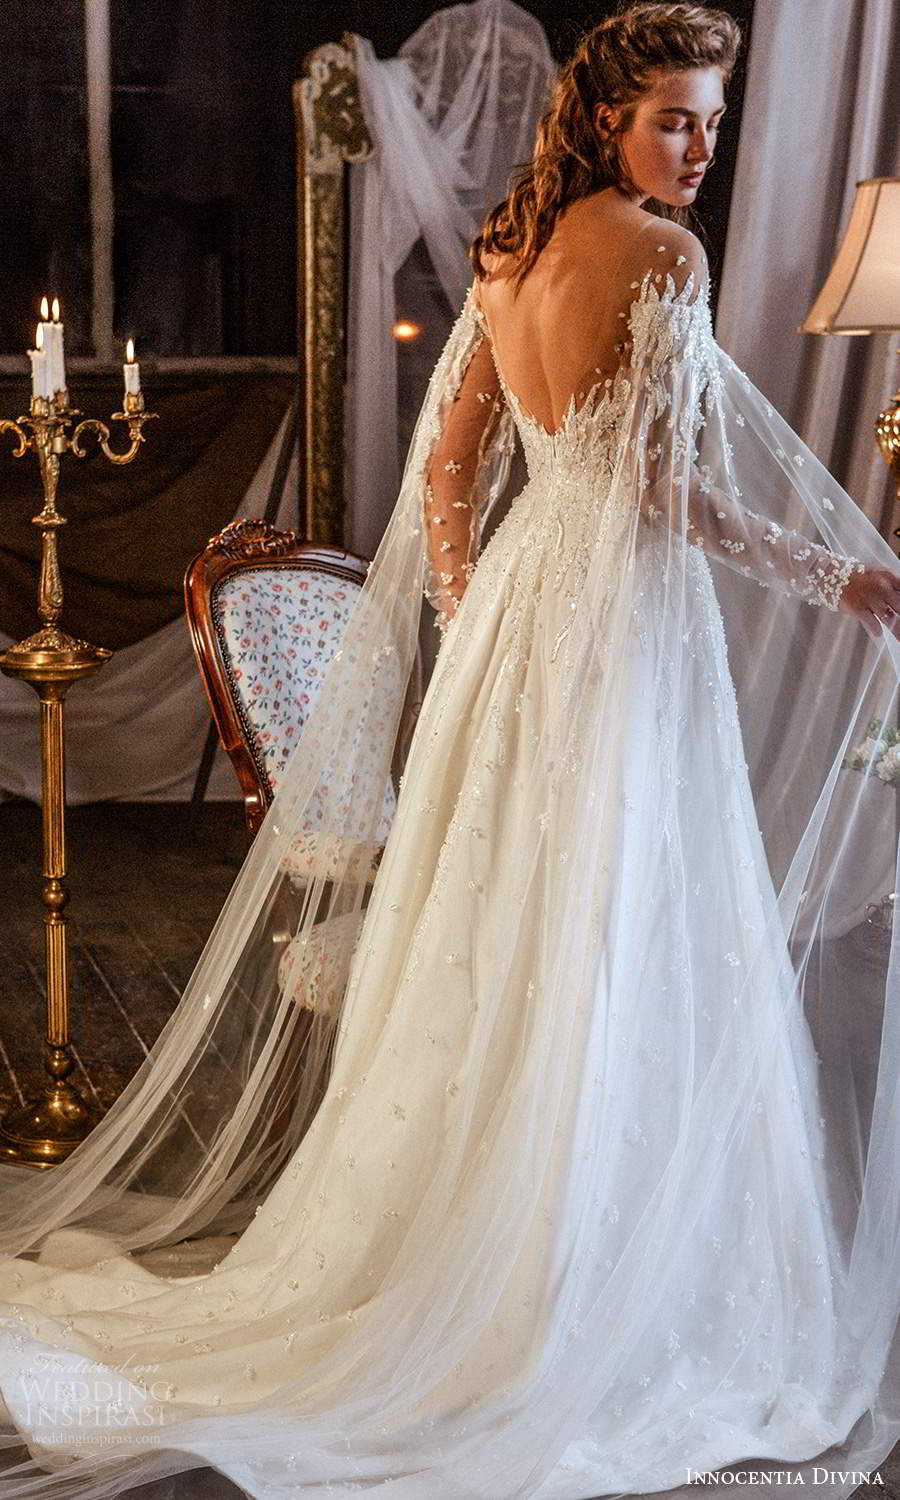 innocentia divina 2021 bridal illusion long flare sleeves sweetheart neckline fully embellished a line ball gown wedding dress chapel train (14) bv